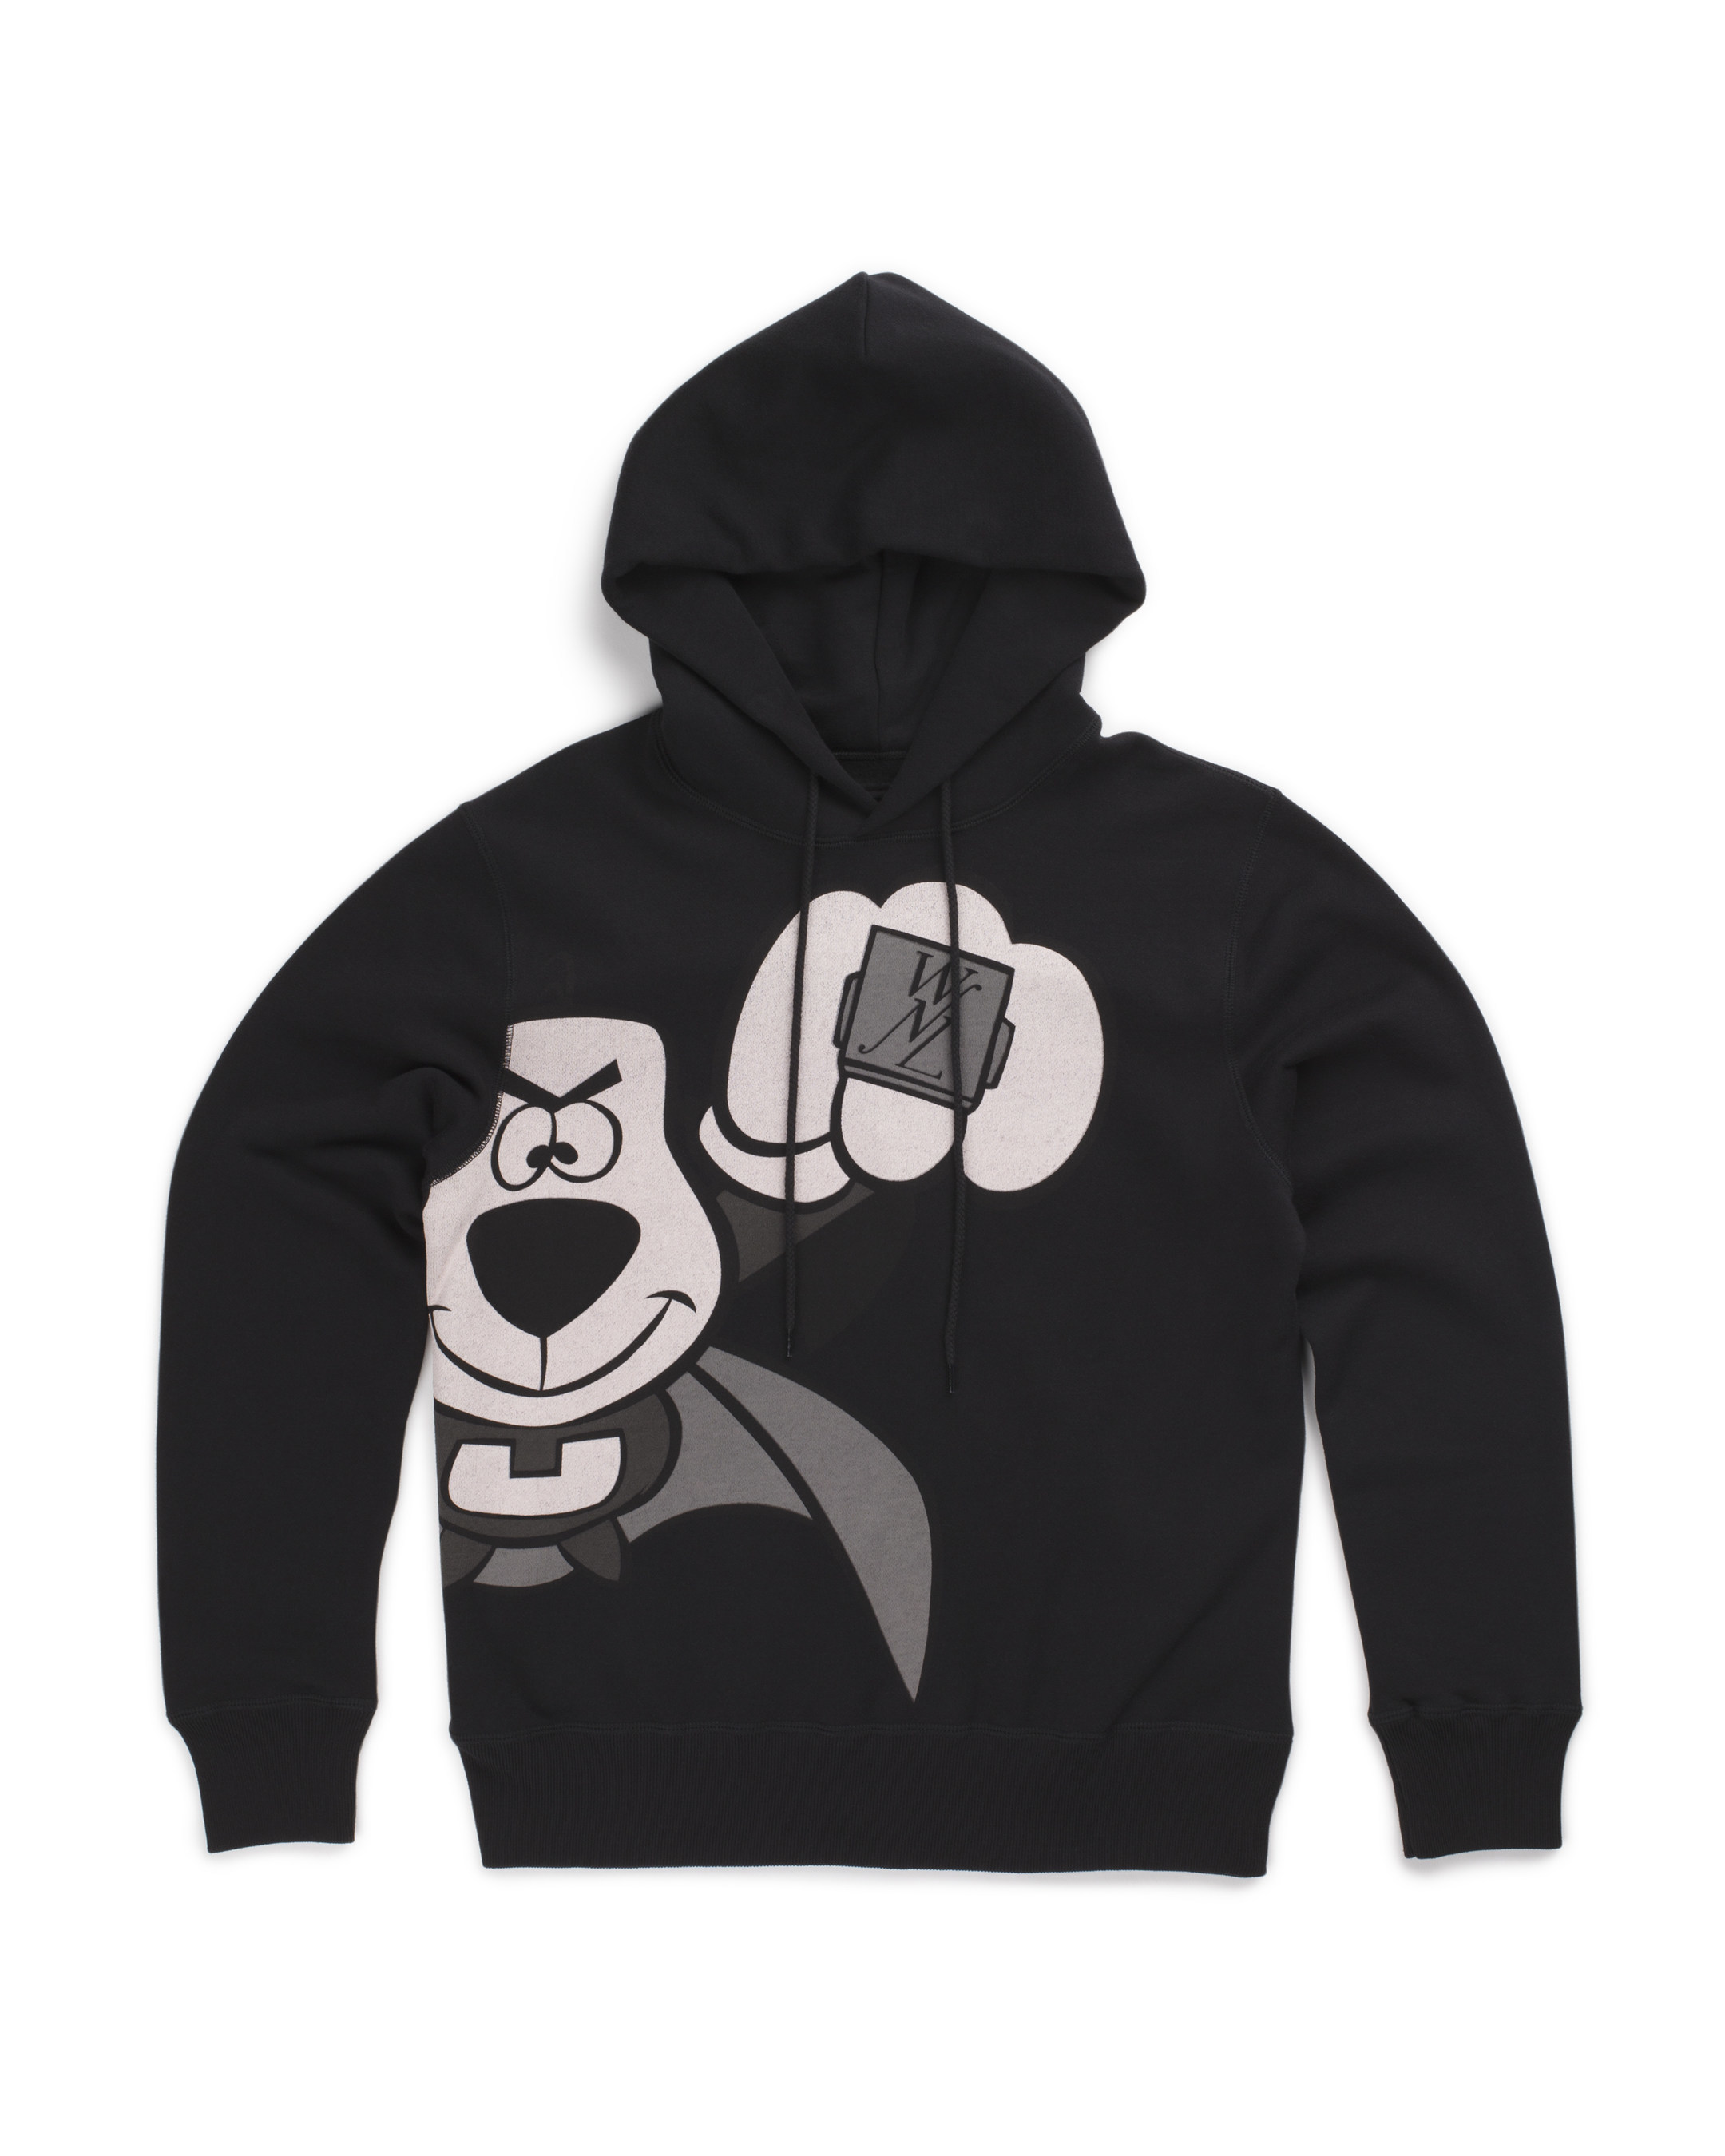 Public School x Underdog hoodie from DreamWorks Animation's Character Clash collection available at amazon.com/DWCharacterClash.